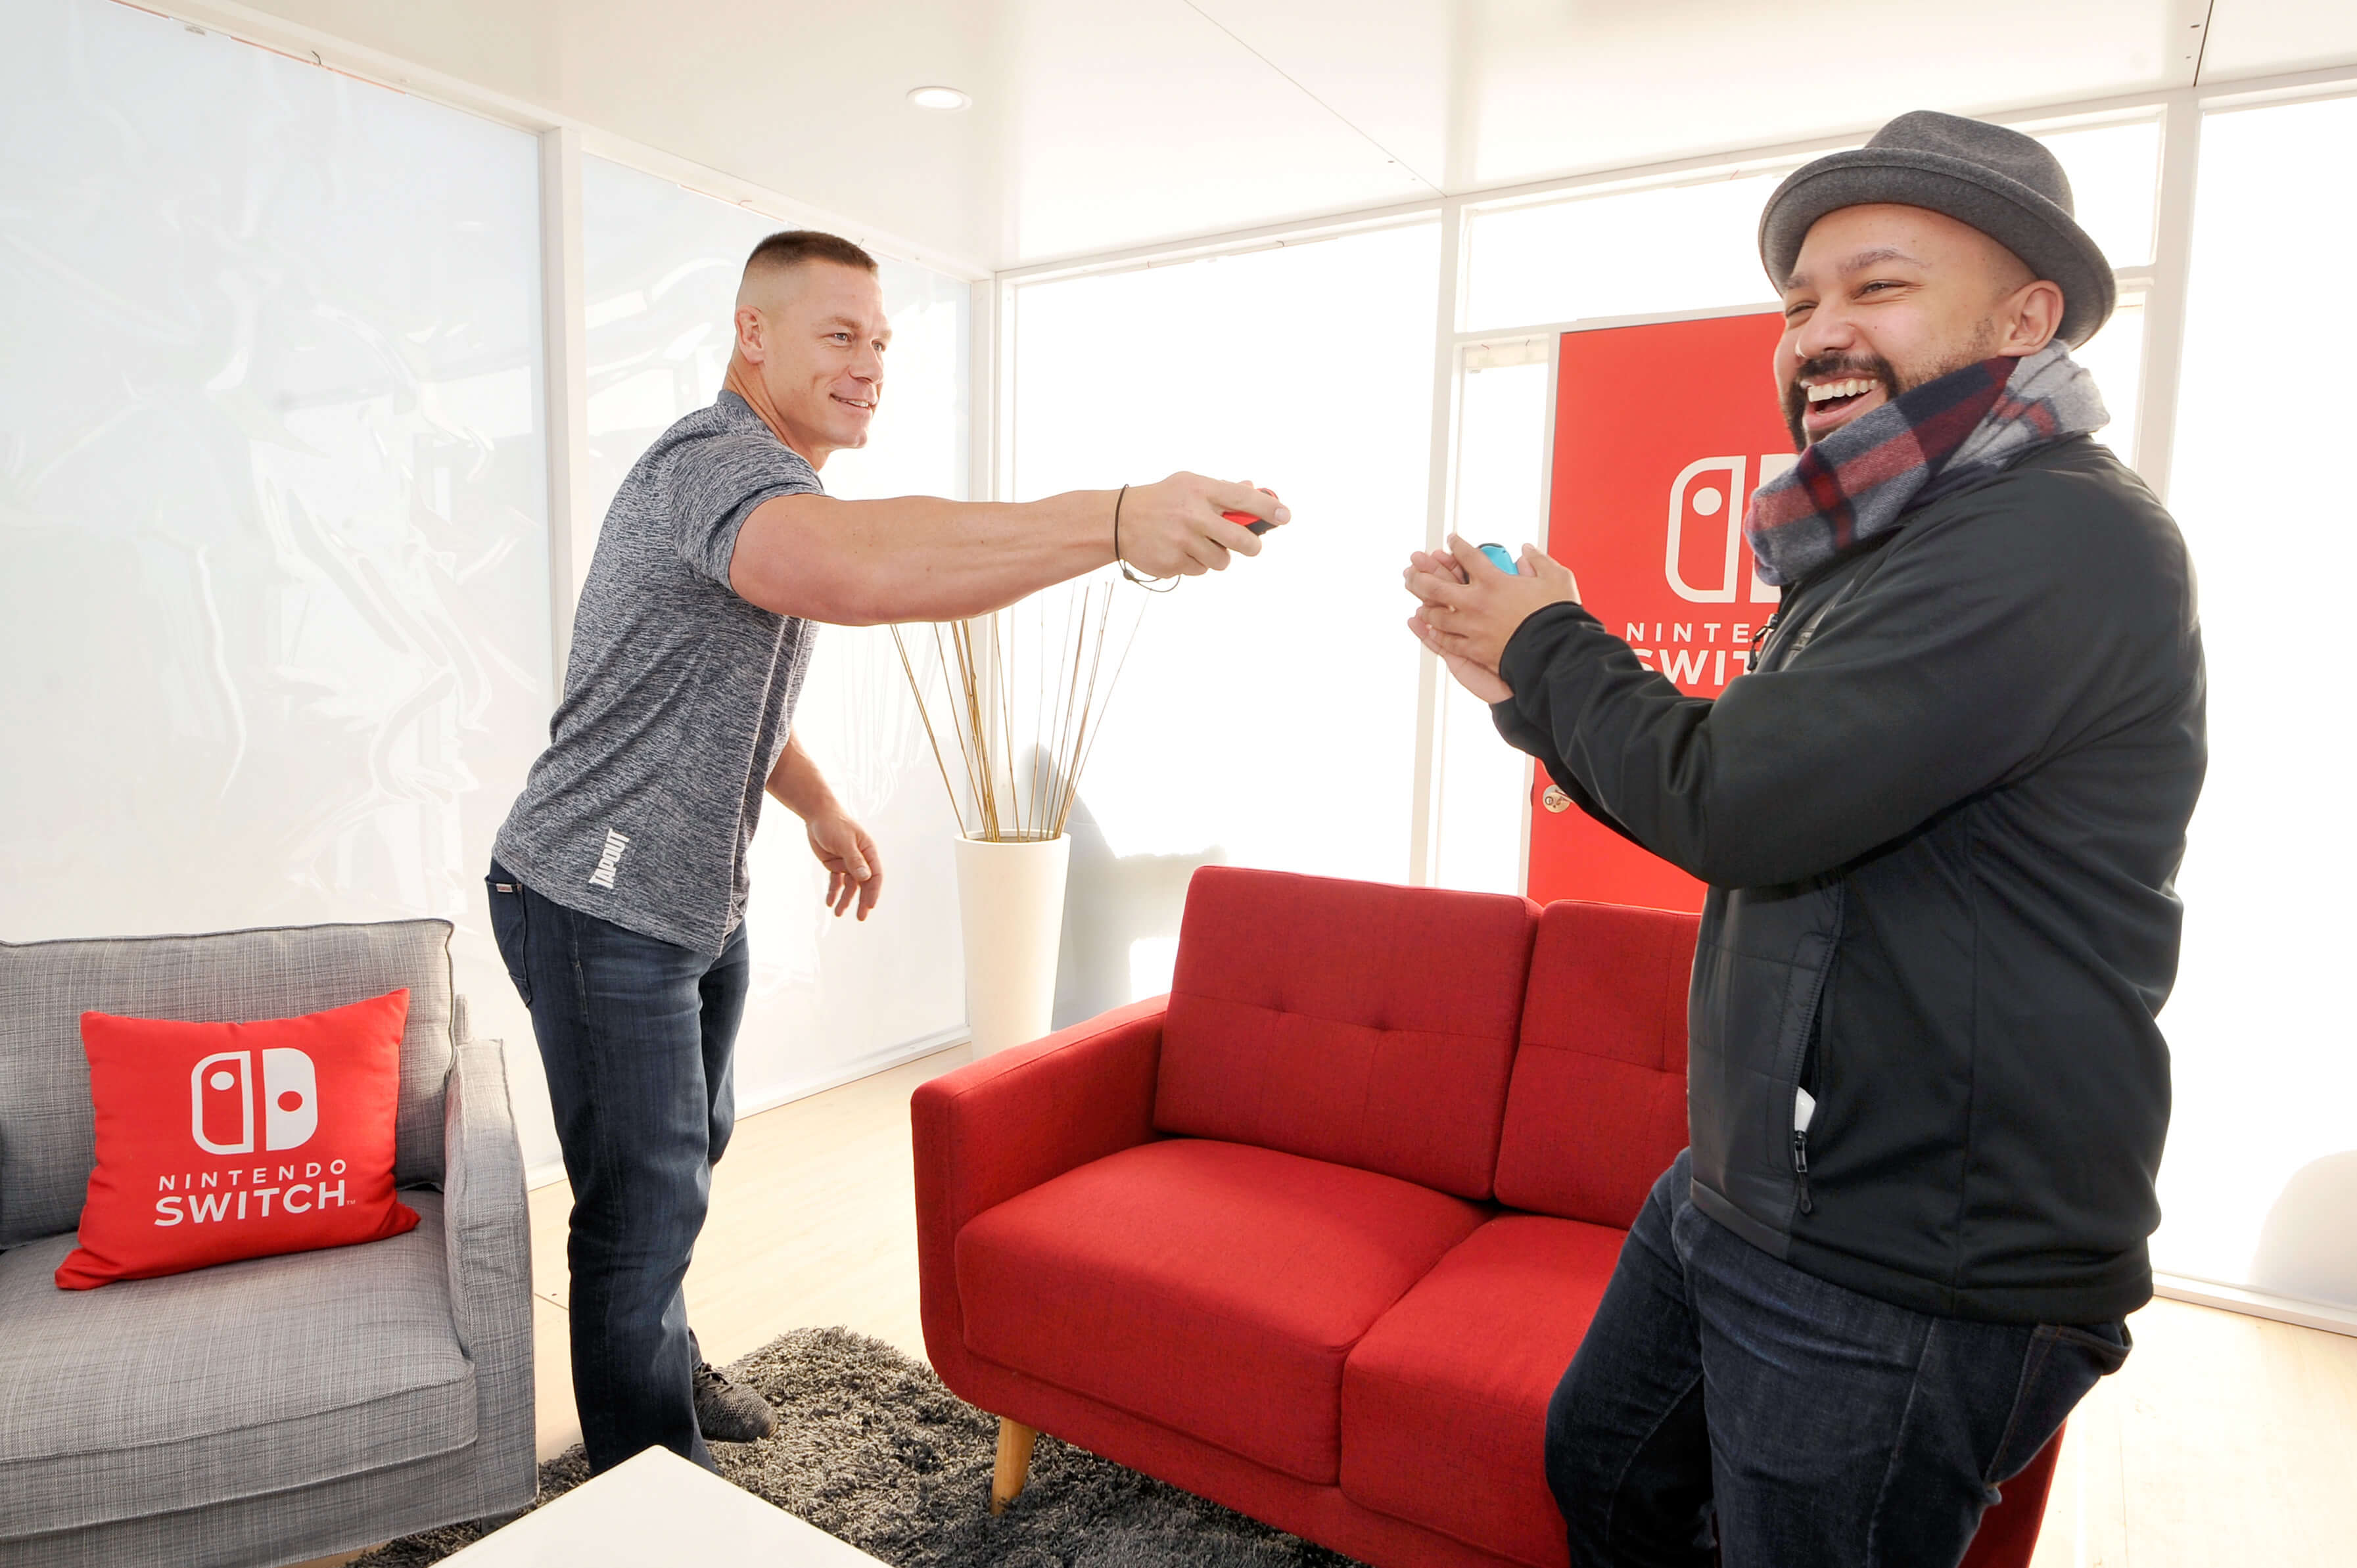 From the snowy slopes, straight to the desert, WWE Superstar John Cena showed up and showed out to challenge Nintendo fans on the Switch.